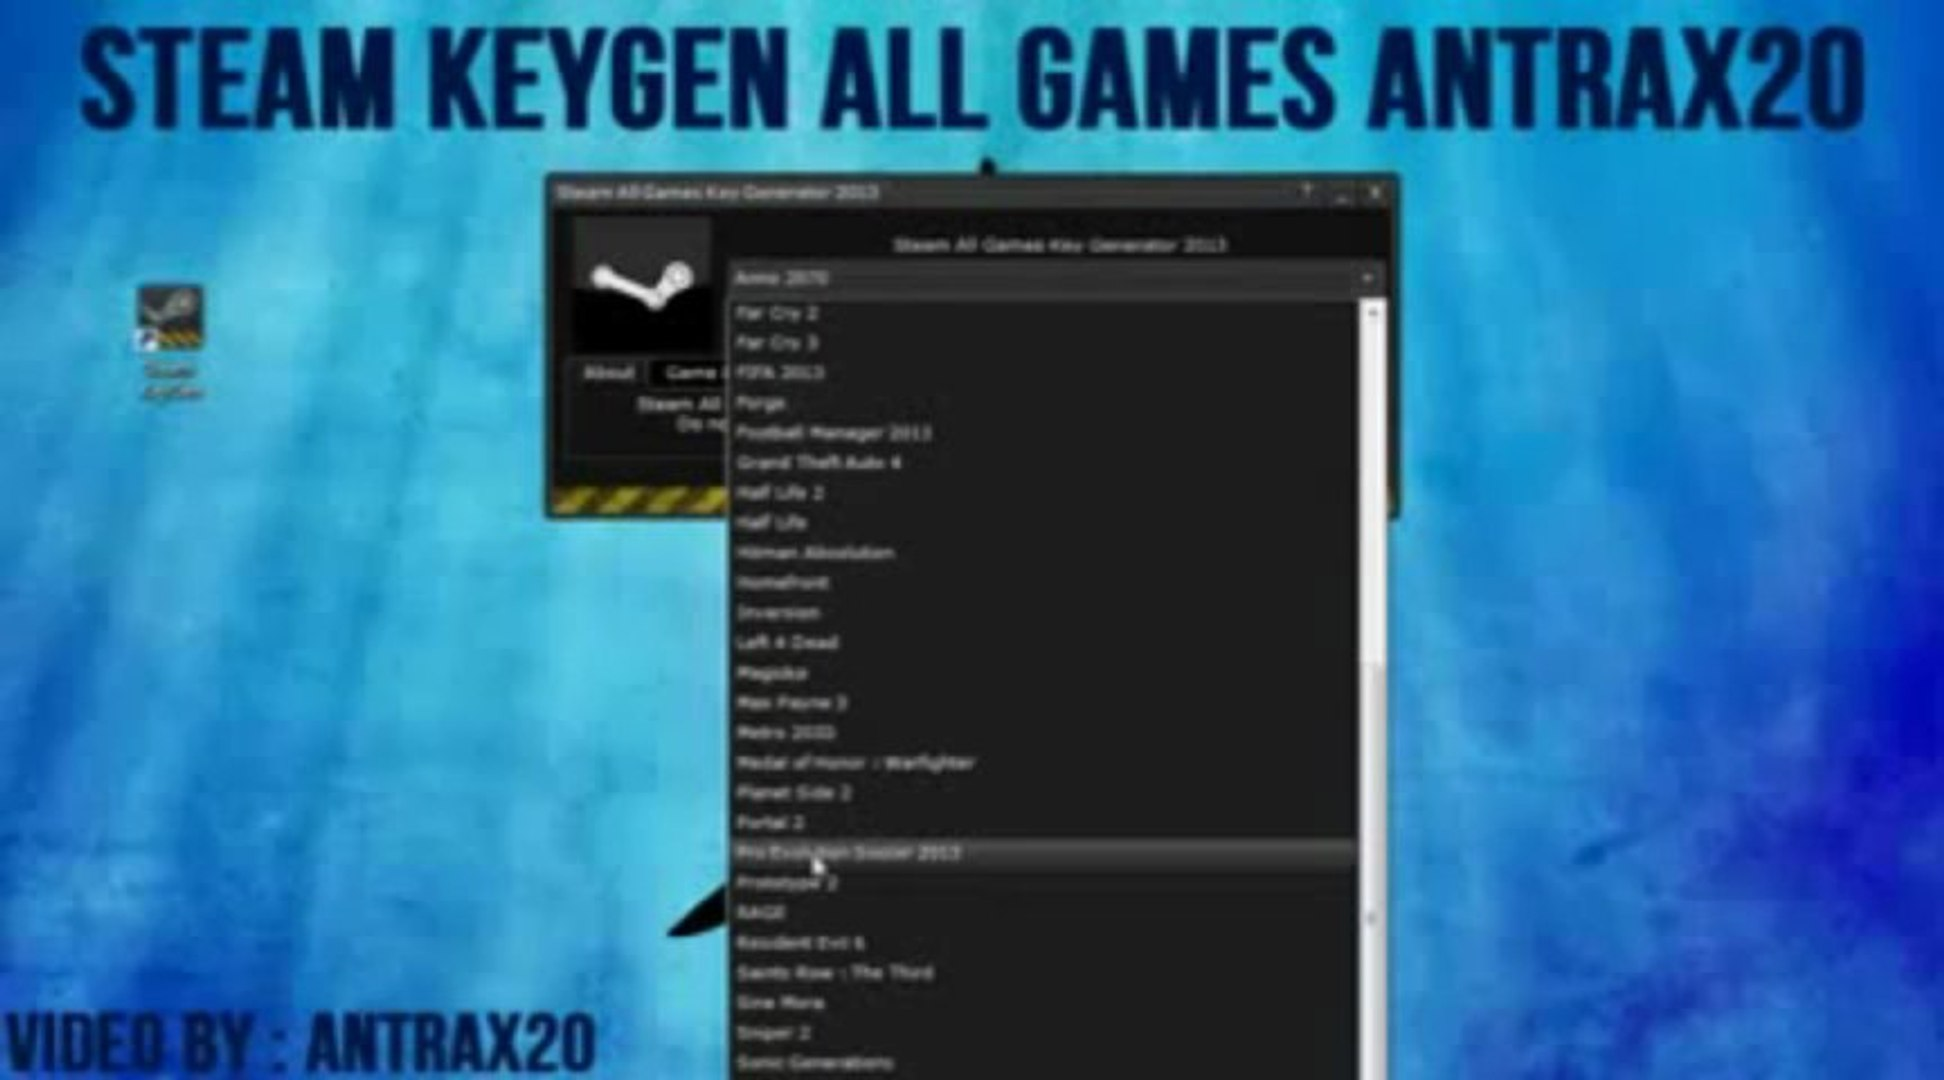 STEAM KEY GENERATOR 2013 ALL GAMES 2013 FREE DOWNLOAD FREE 2013